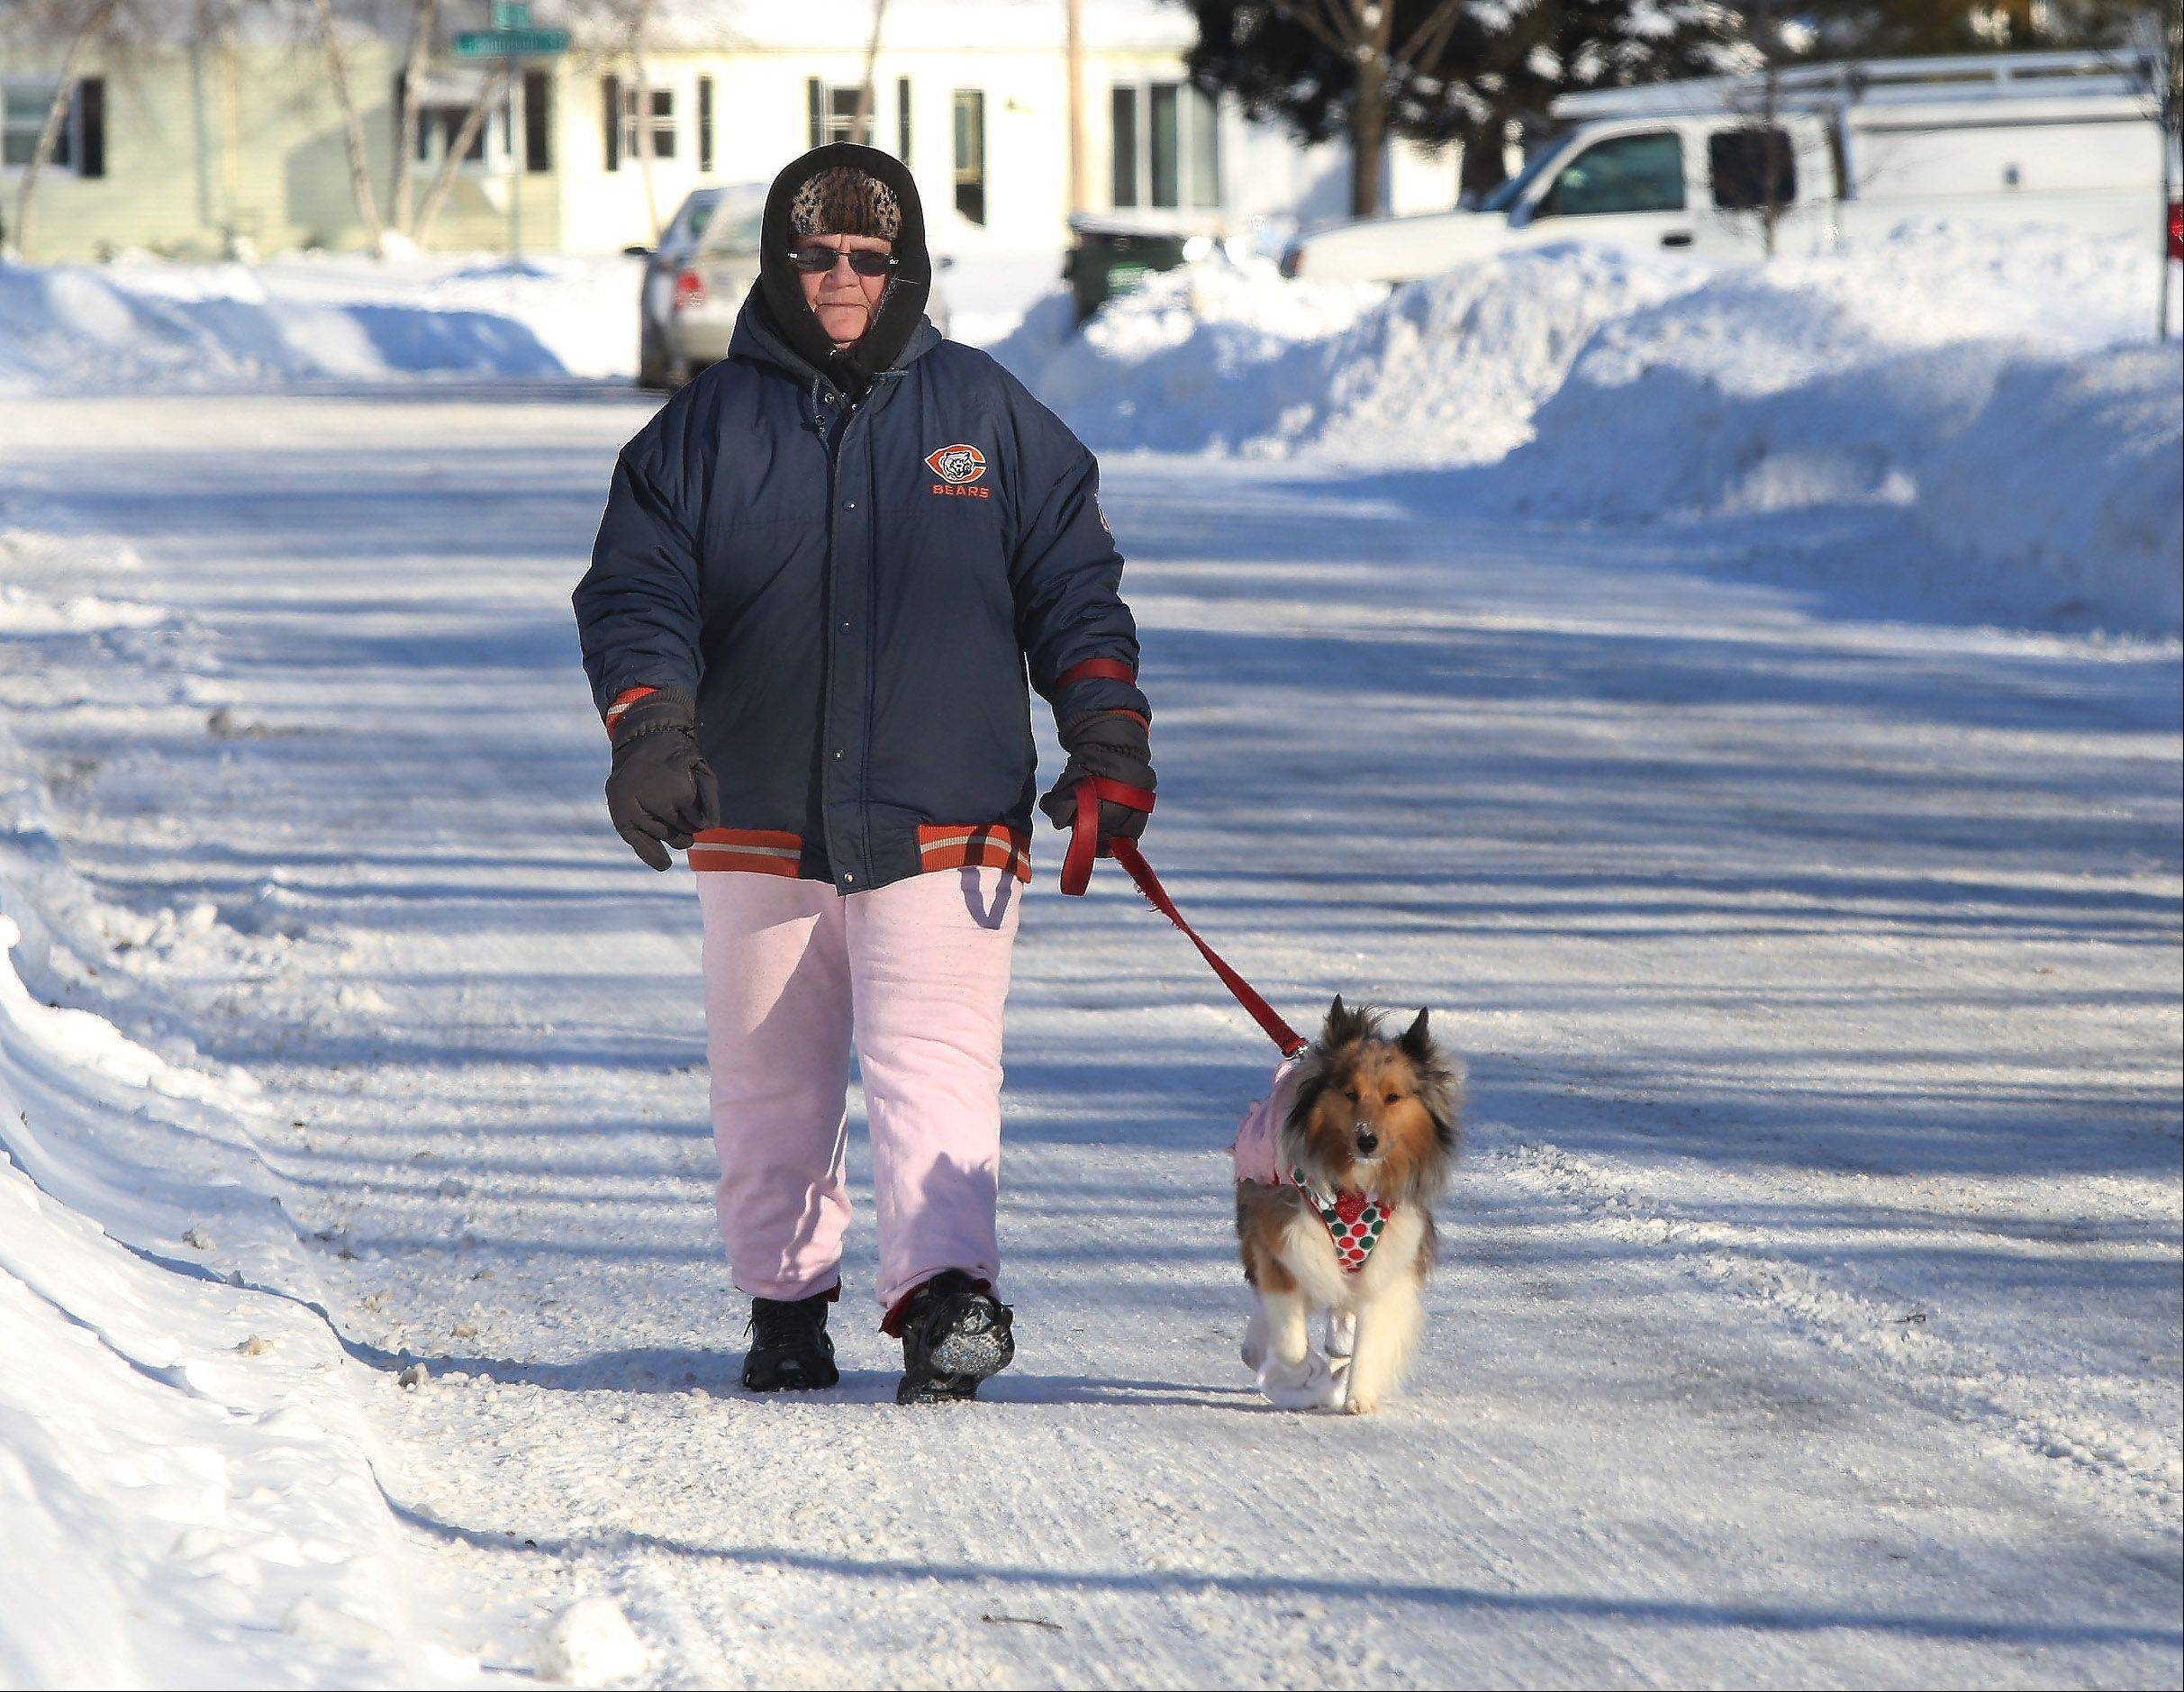 Mundelein resident Sandy Groves bundles up as she walks her Sheltie, Mandy, during the brutal cold on Monday that blew in overnight. Temperatures stayed below zero throughout the day making it the coldest day in nearly twenty years.